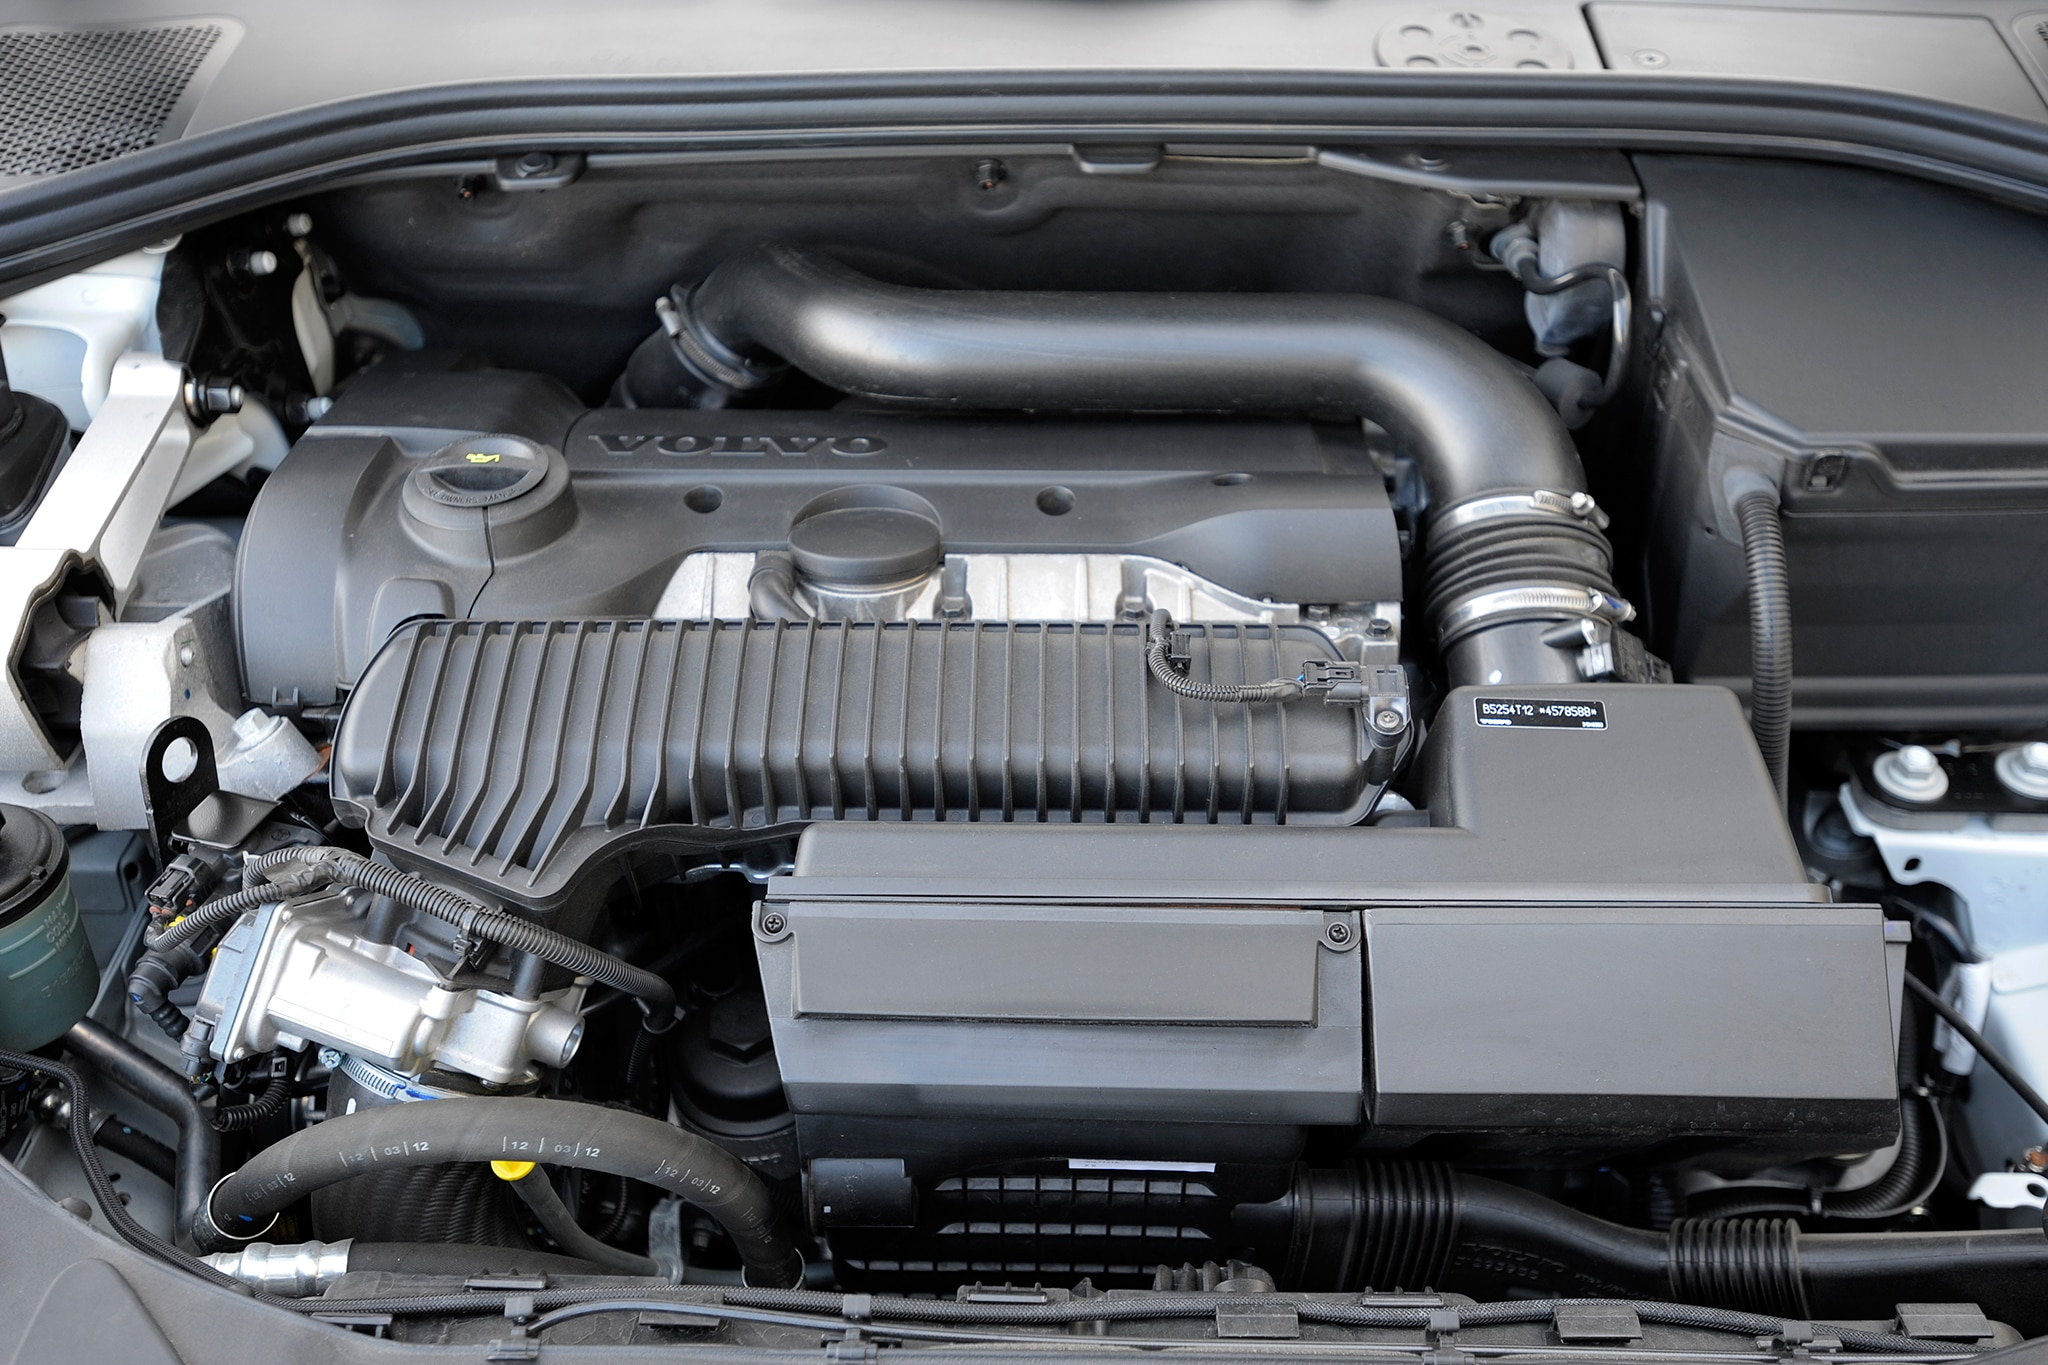 2013 volvo s60t5 engine diagram recall central: 2011-2012 volvo s60, 2013-2014 lincoln mkz ... 2008 volvo xc90 engine diagram